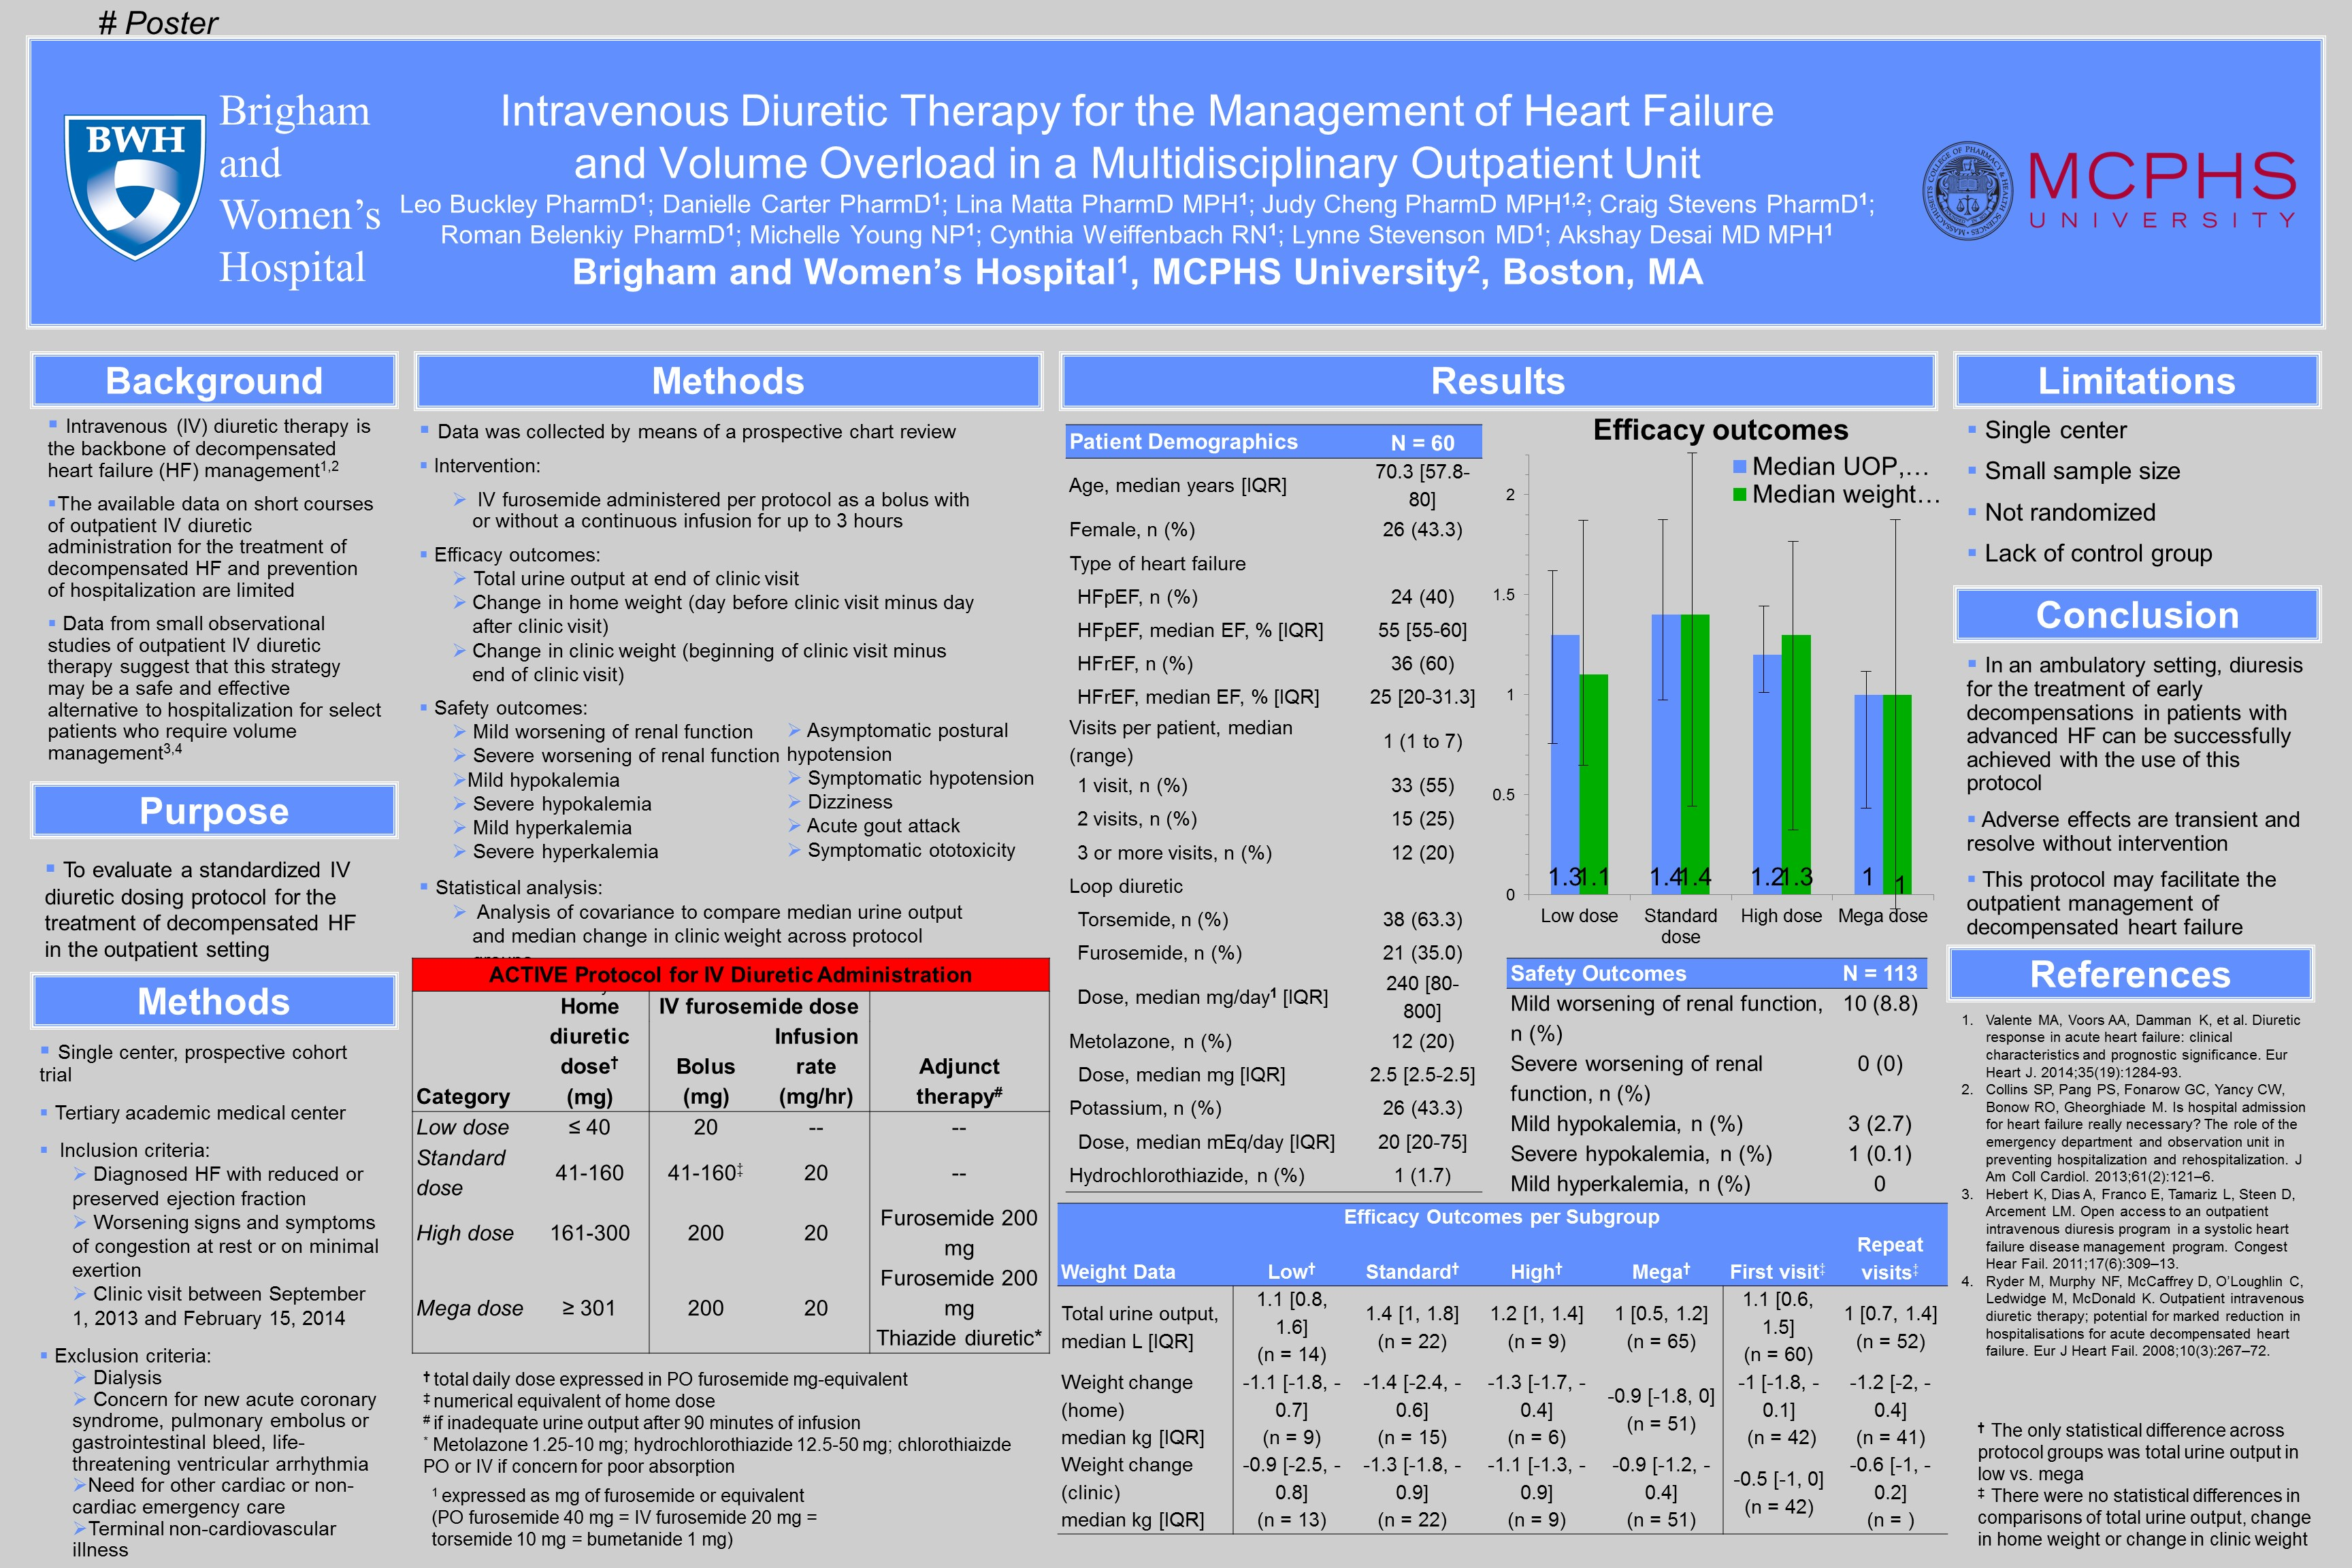 Intravenous Diuretic Therapy for the Management of Heart Failure and Volume Overload in a Multdisciplinary Outpatient Unit